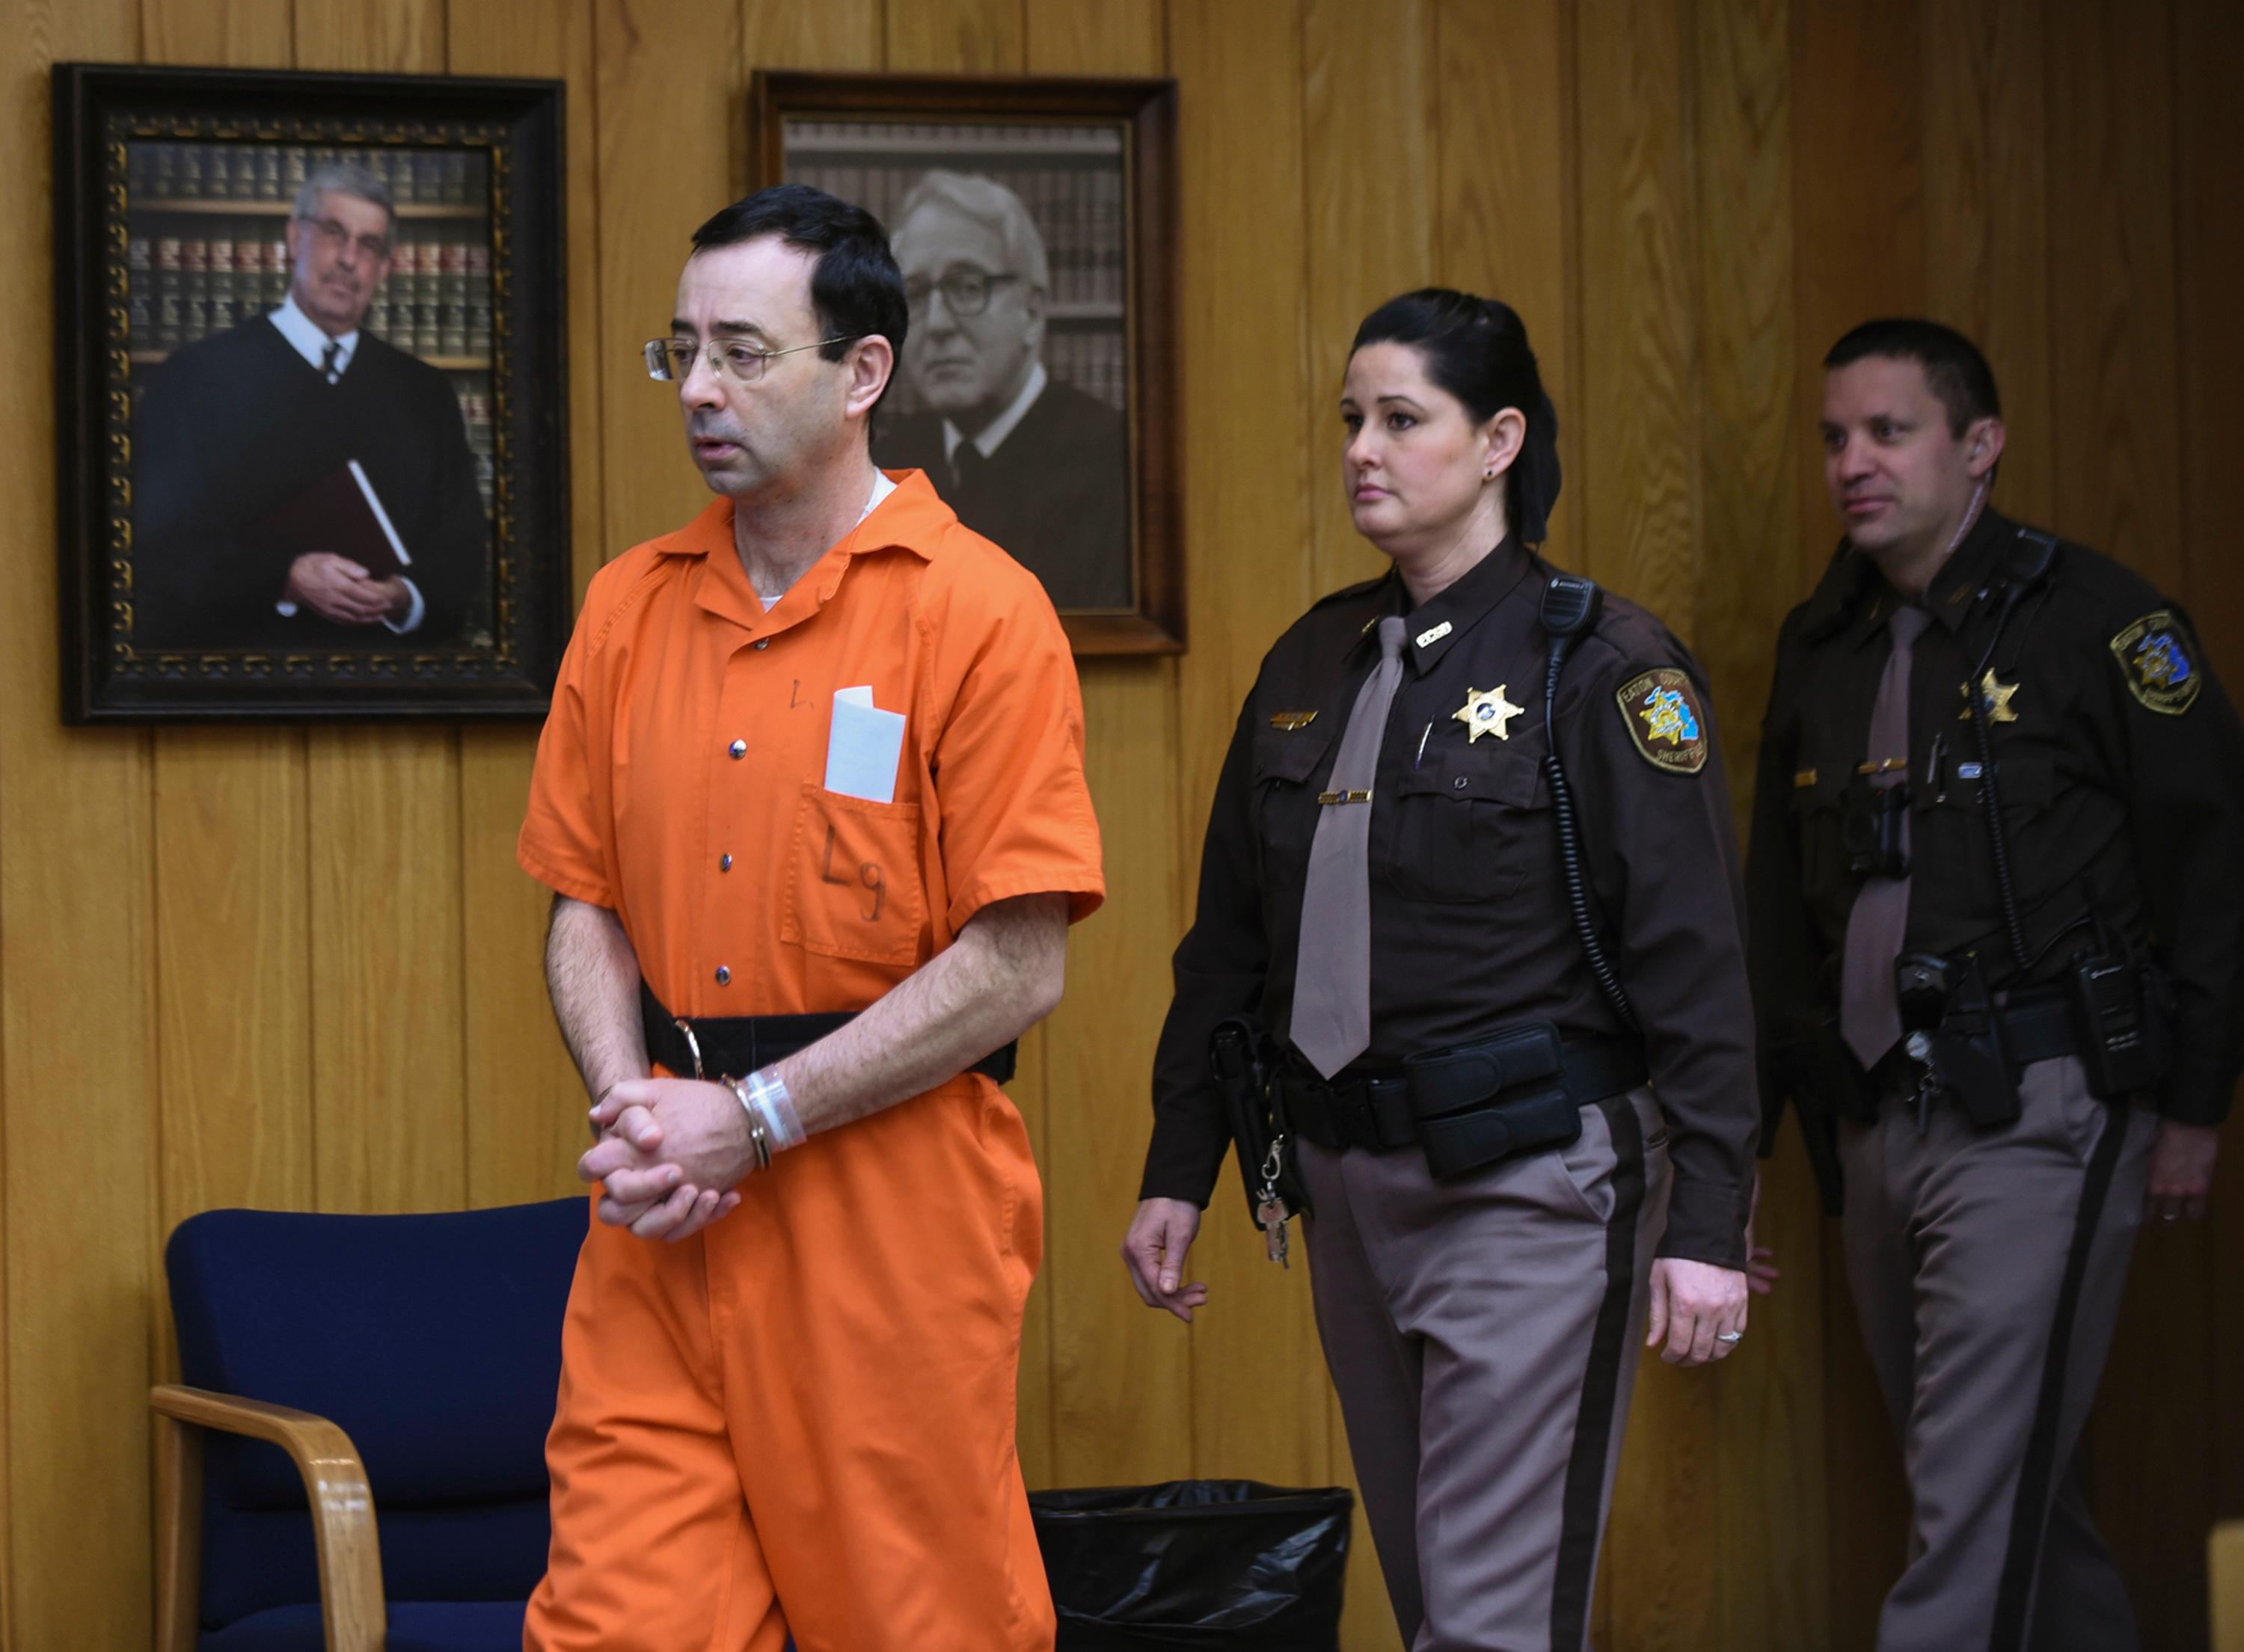 Larry Nassar enters Judge Janice Cunningham's circuit courtroom Wednesday, Jan. 31, 2018, during the first day of victim impact statements in Eaton County Circuit Court in Charlotte, Mich., where Nassar is expected to be sentenced on three counts of sexual assault some time next week. Nassar was sentenced to 40 to 175 years in prison in a similar hearing in another county last week. (Matthew Dae Smith/Lansing State Journal via AP)